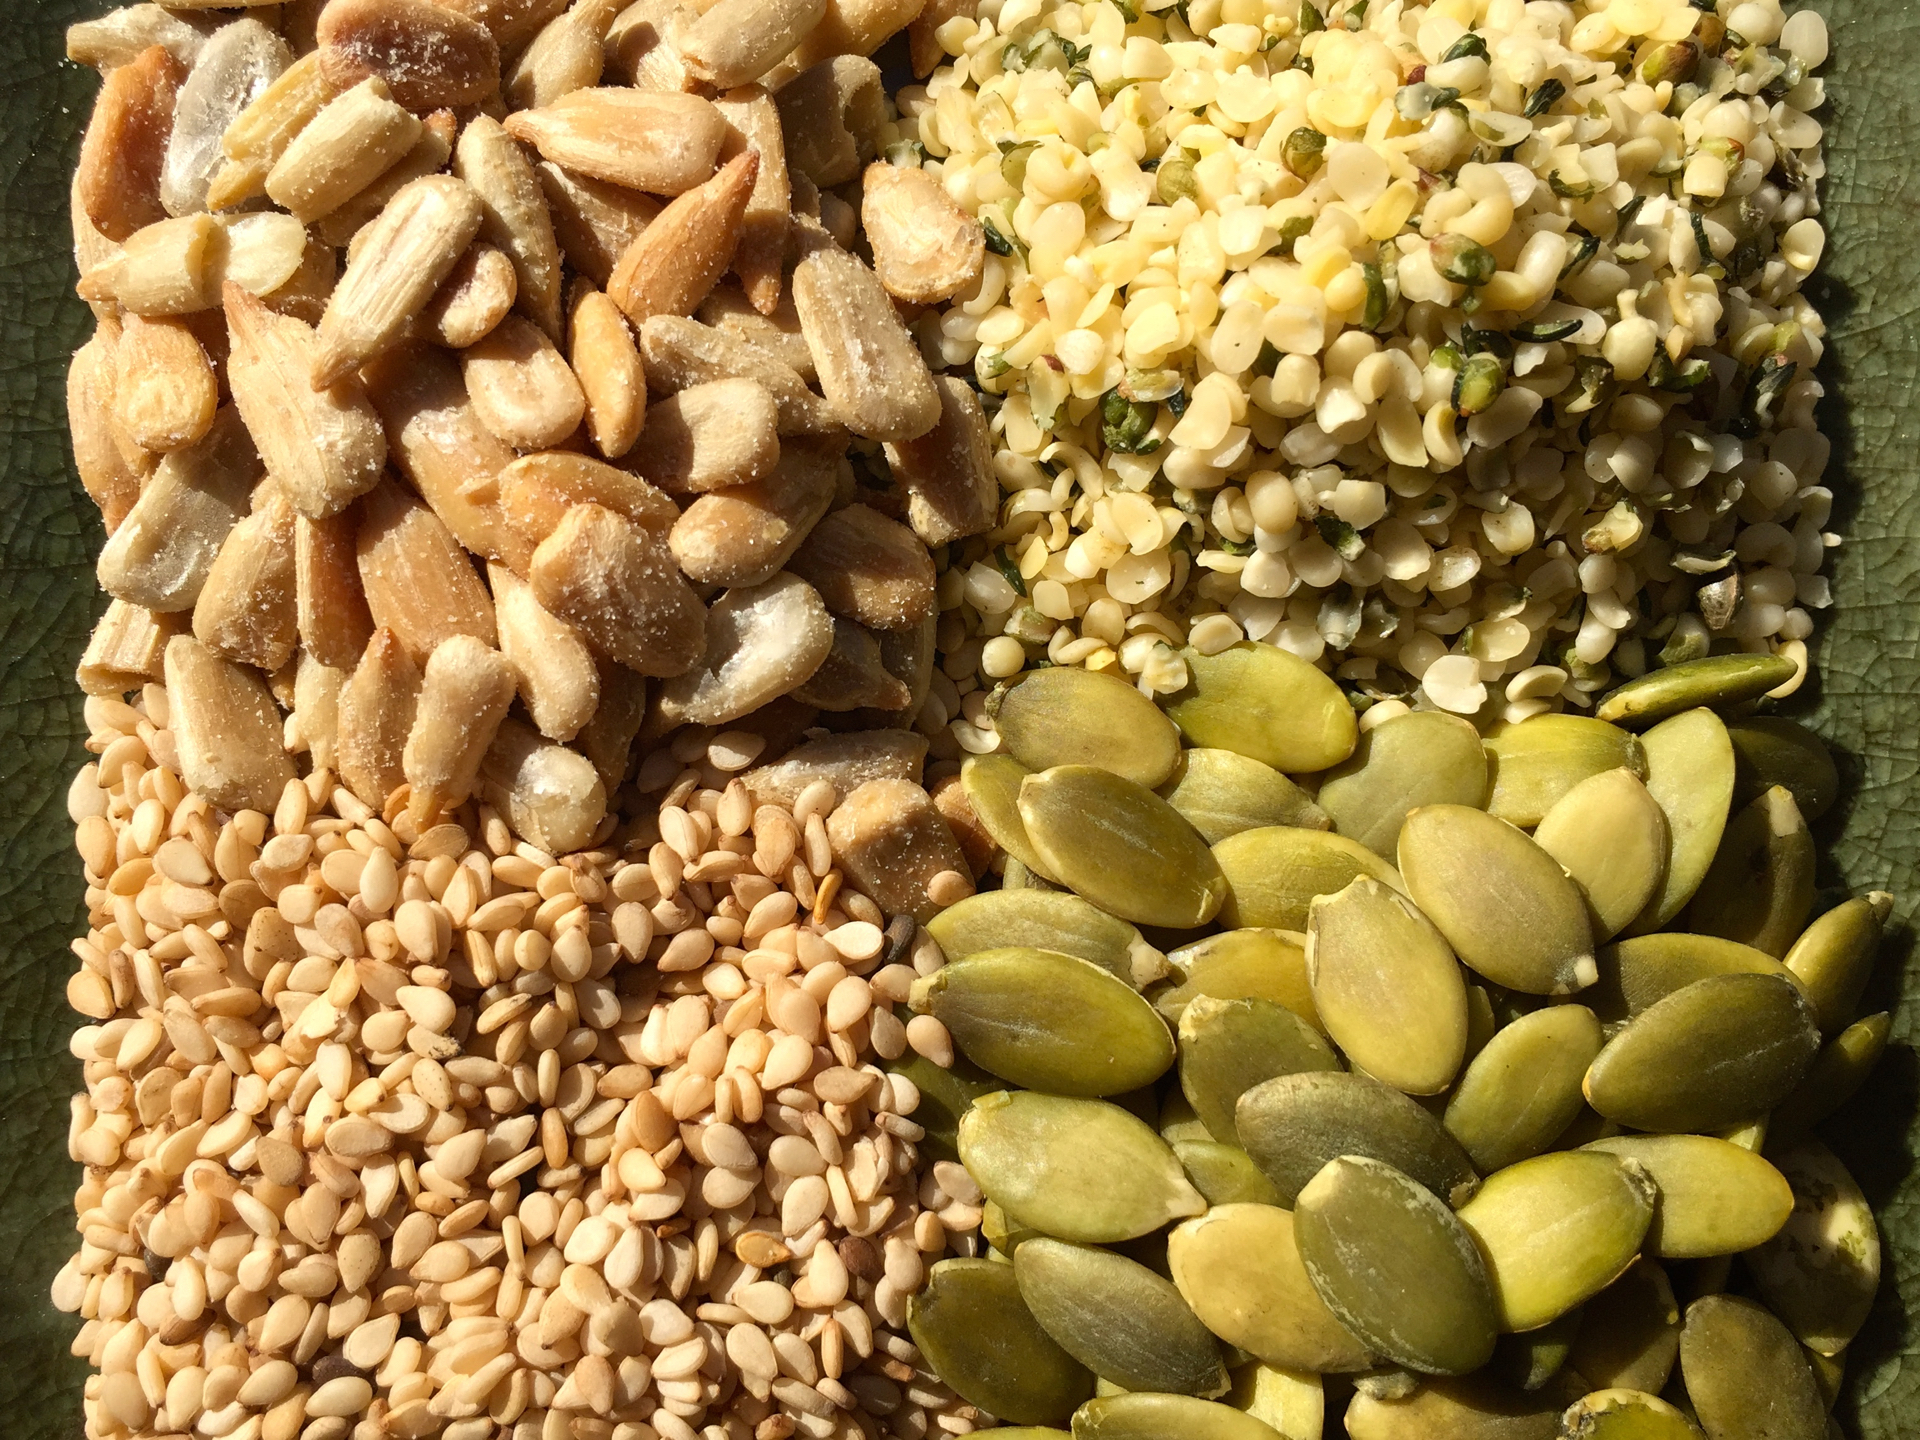 Four types of seeds: hemp, sunflower, pumpkin, sesame. Photo: Lisa Landers